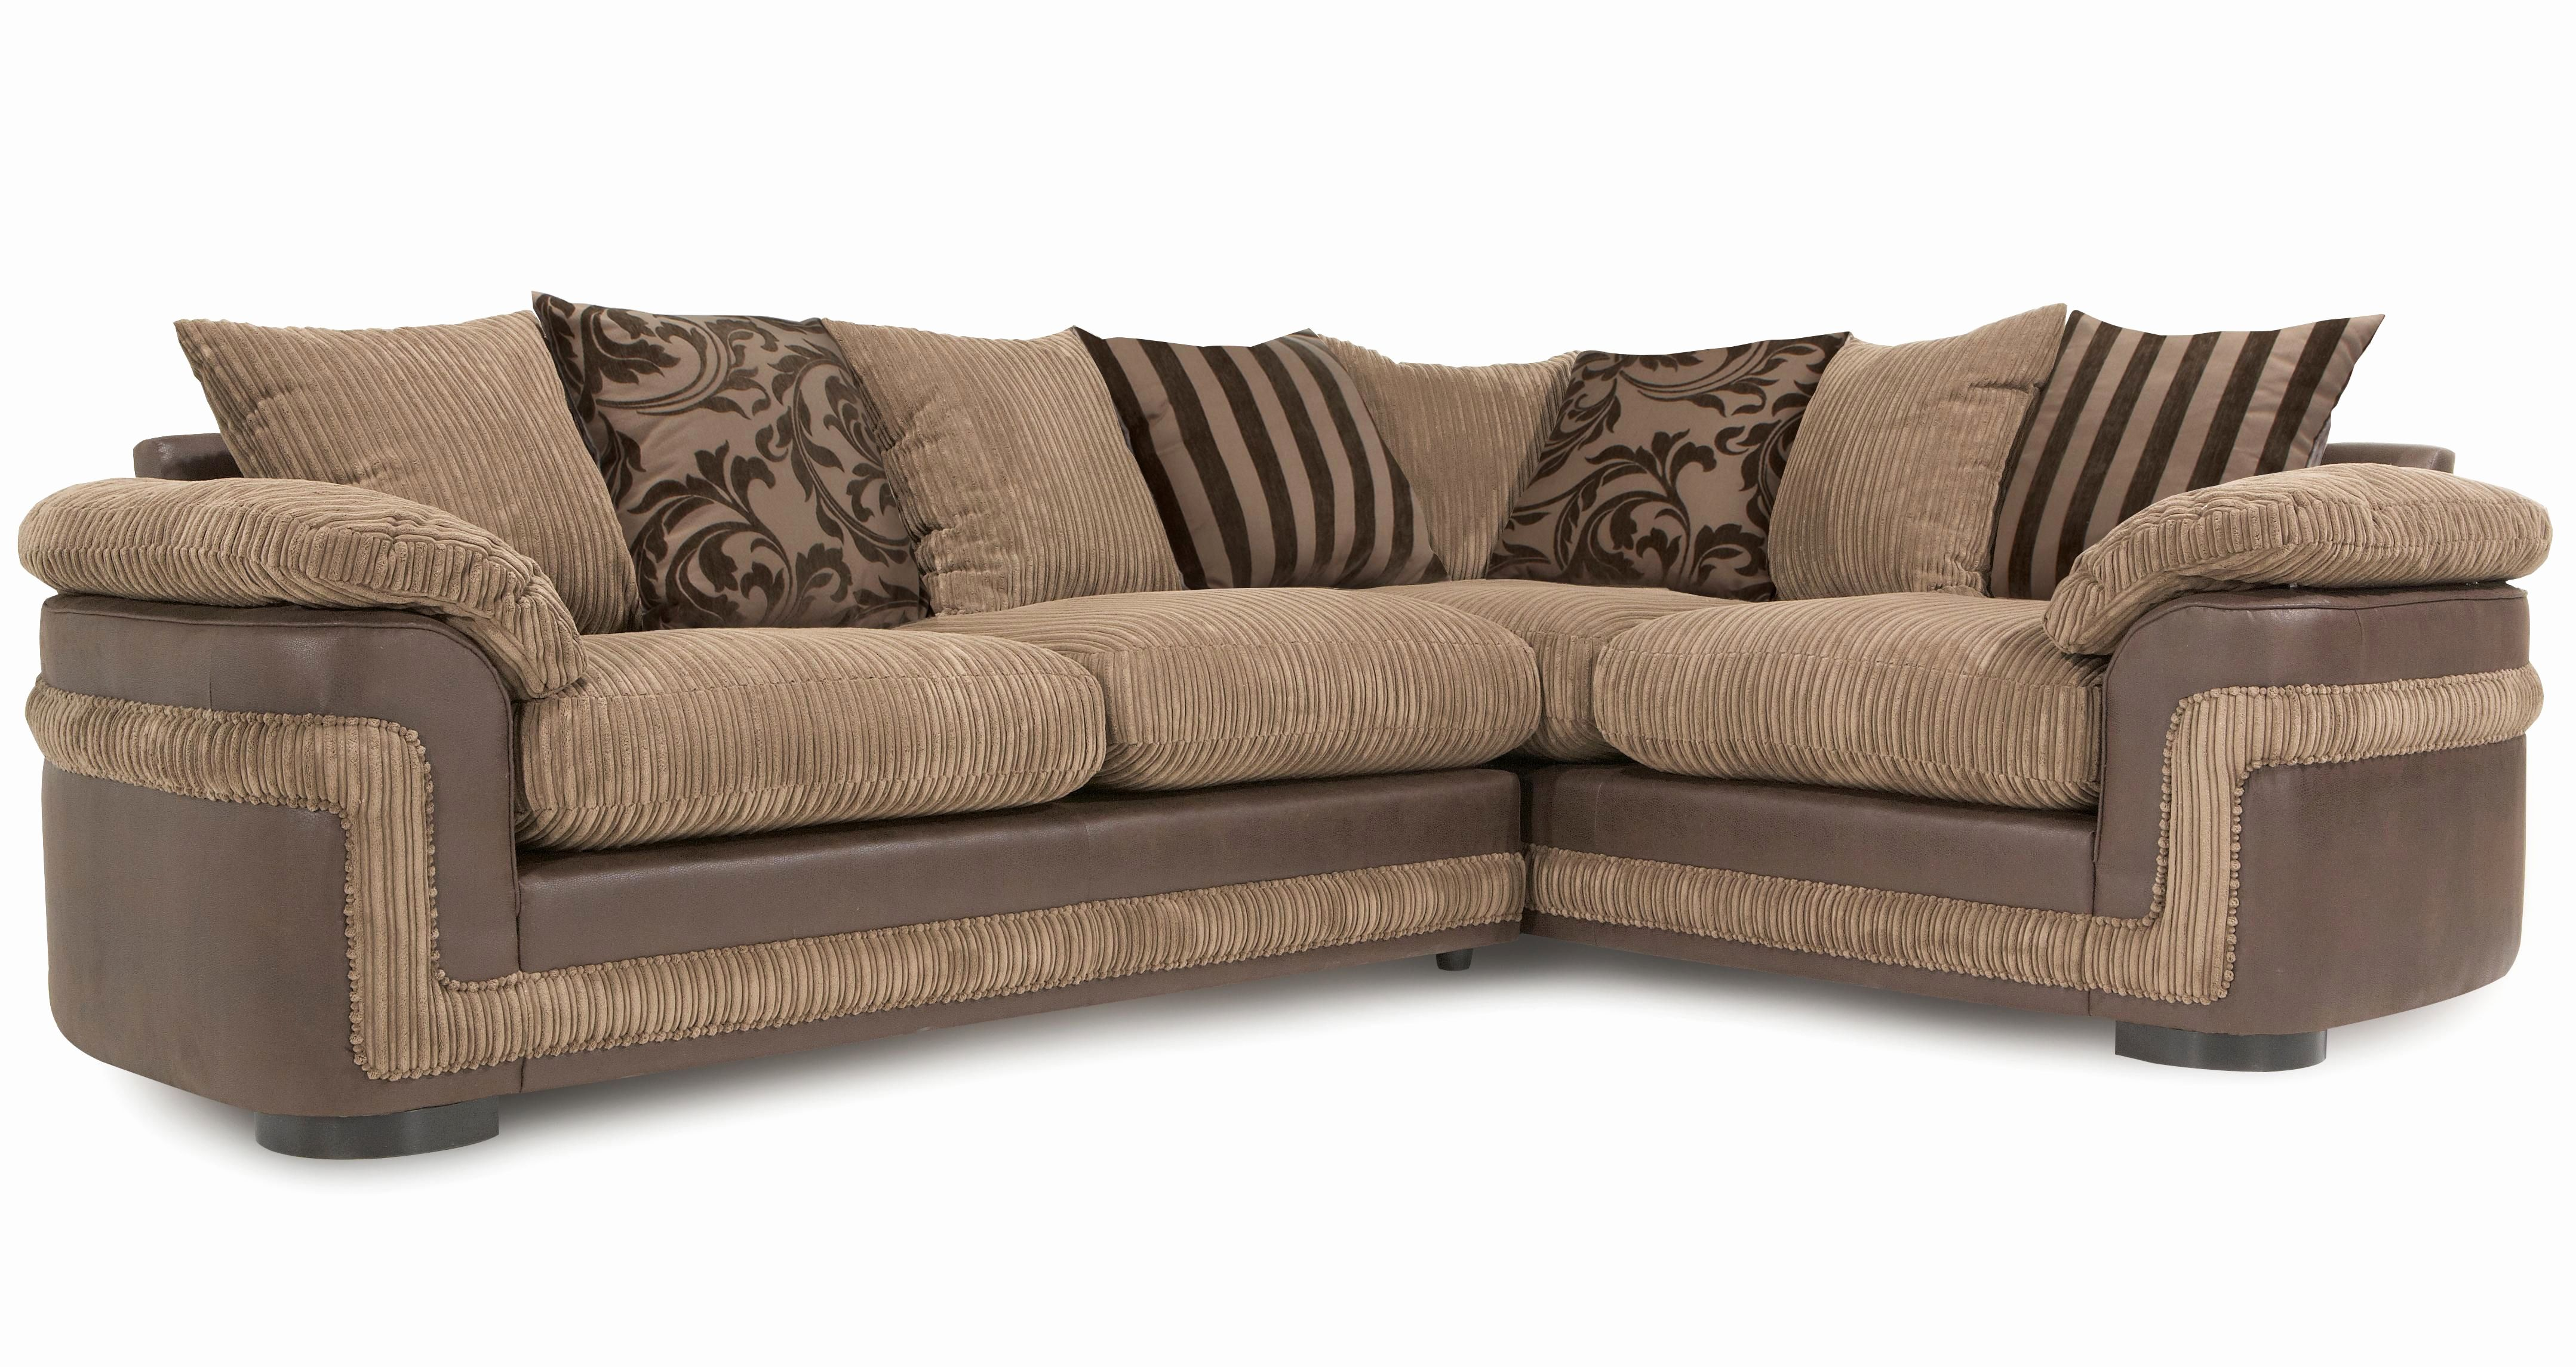 dfs california sofa dimensions quality sofas at discount prices corduroy corner cord ebay thesofa